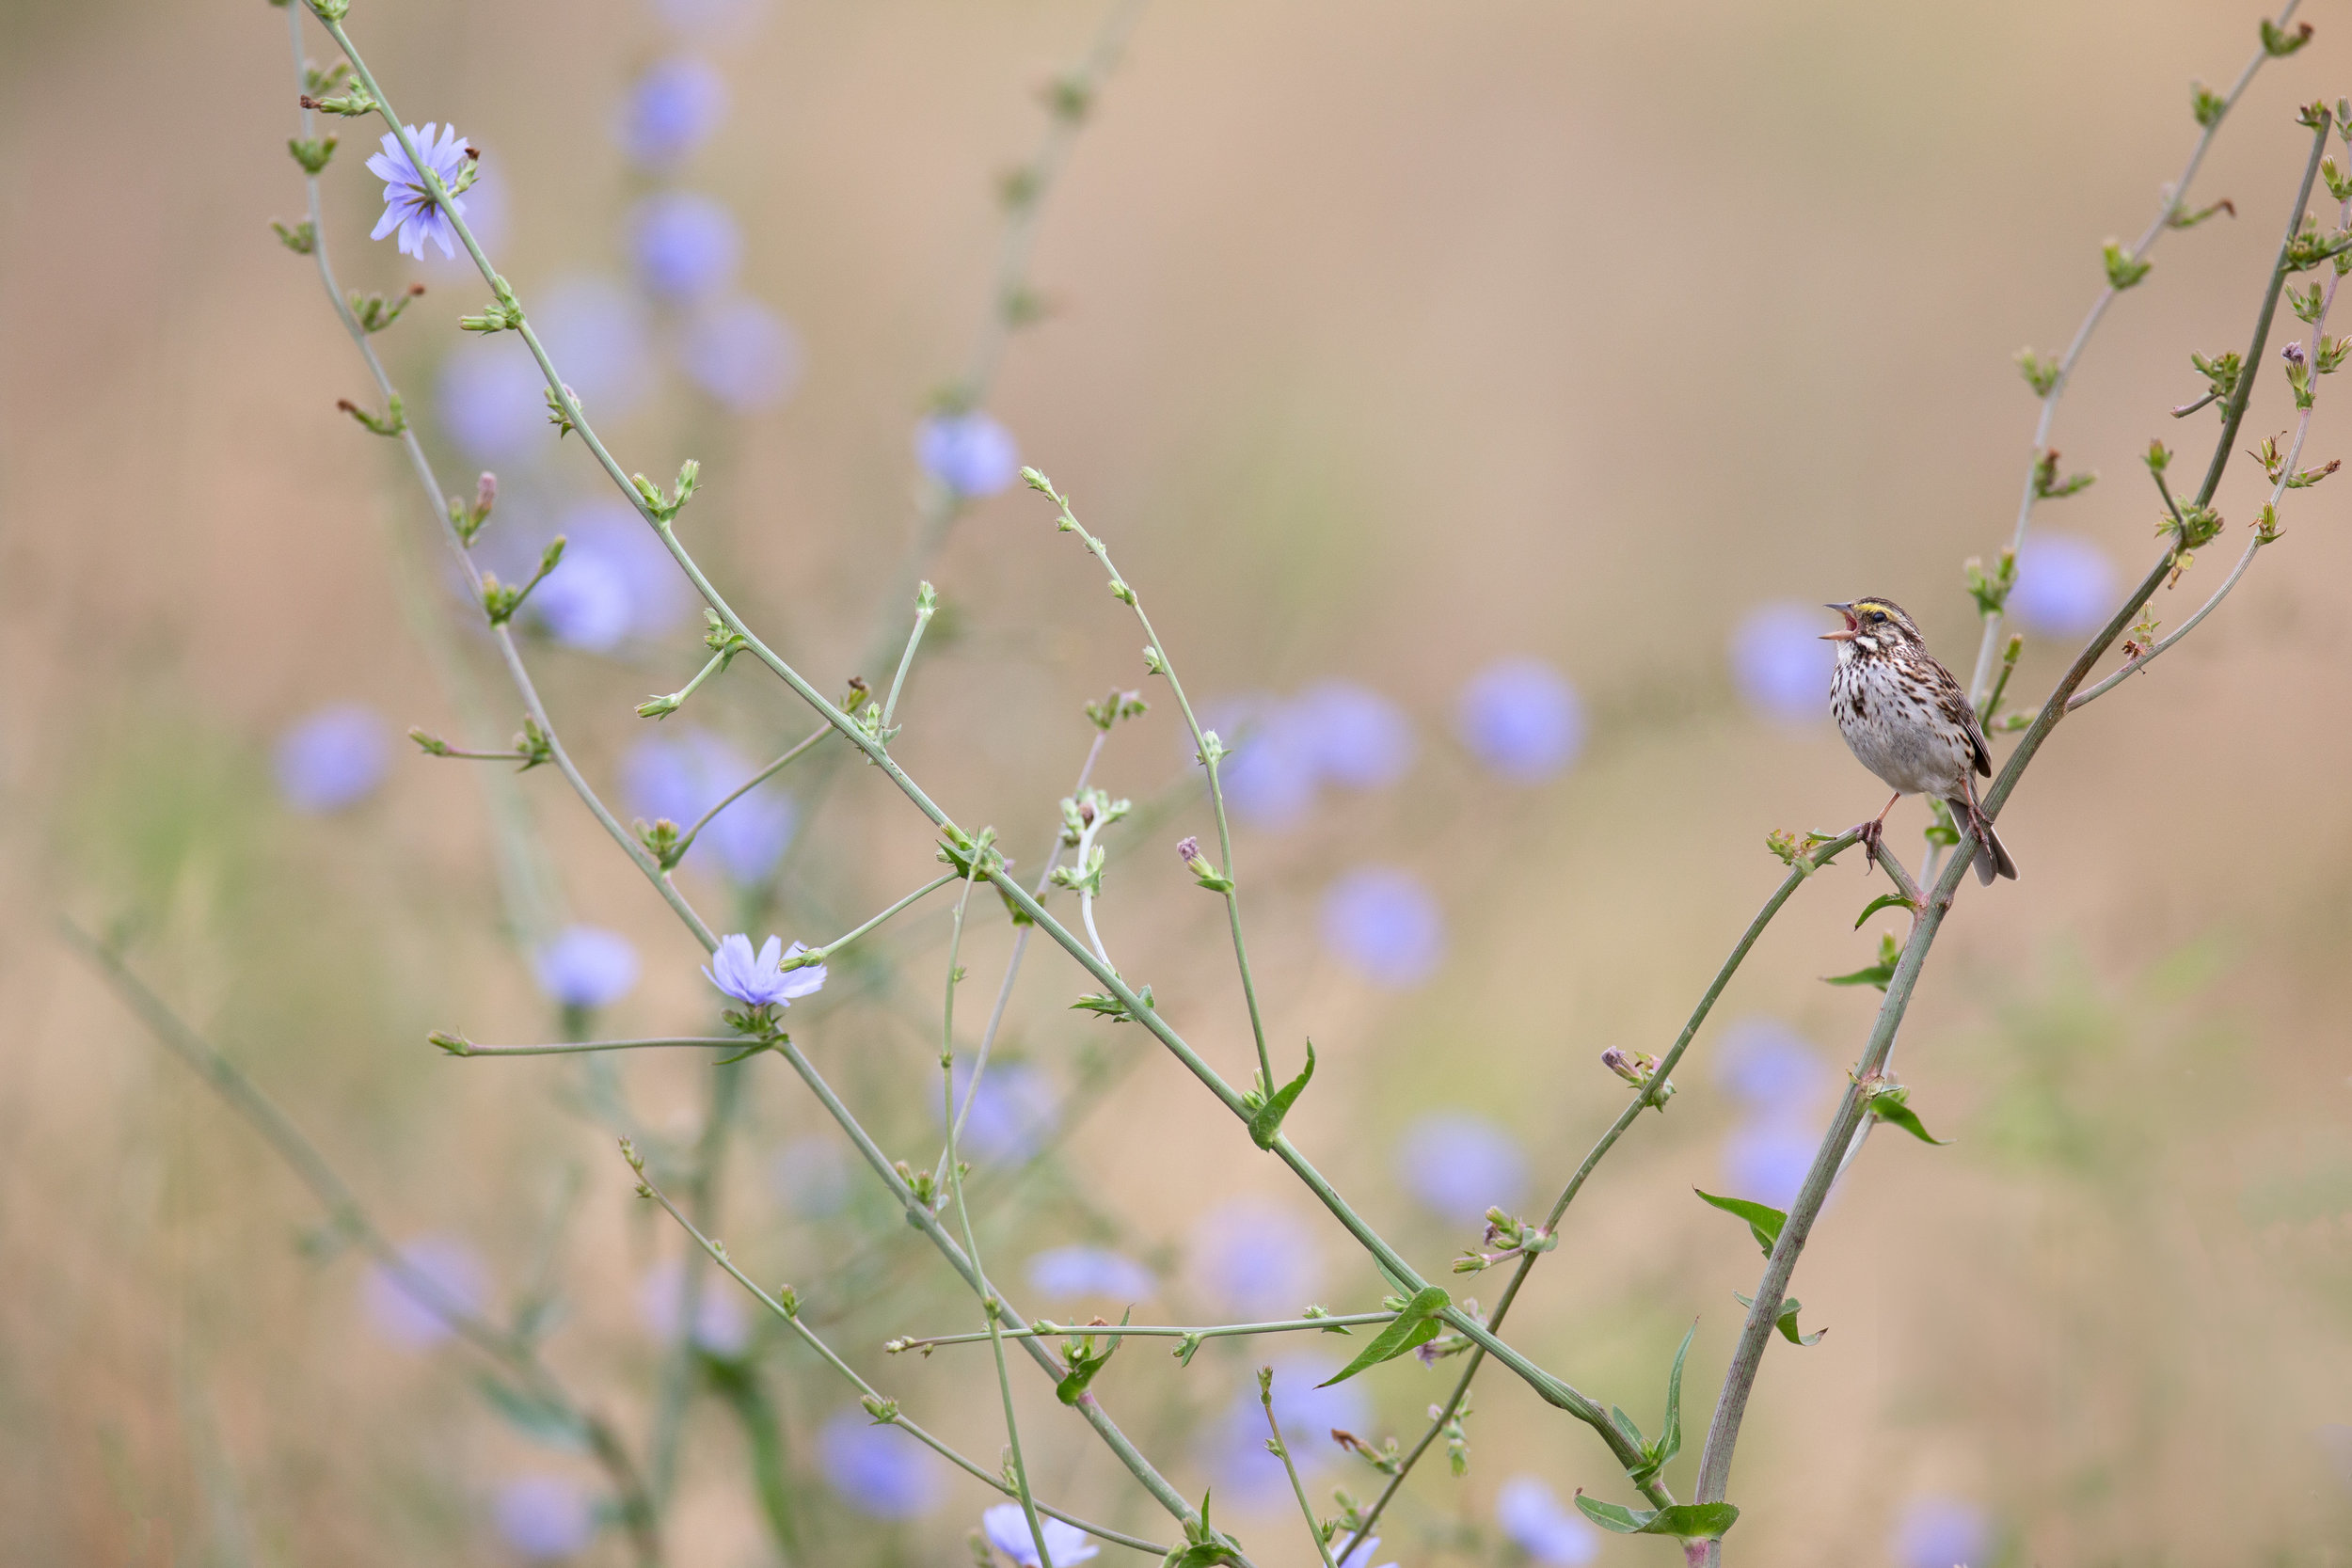 savannah_sparrow_7773-Editb.jpg